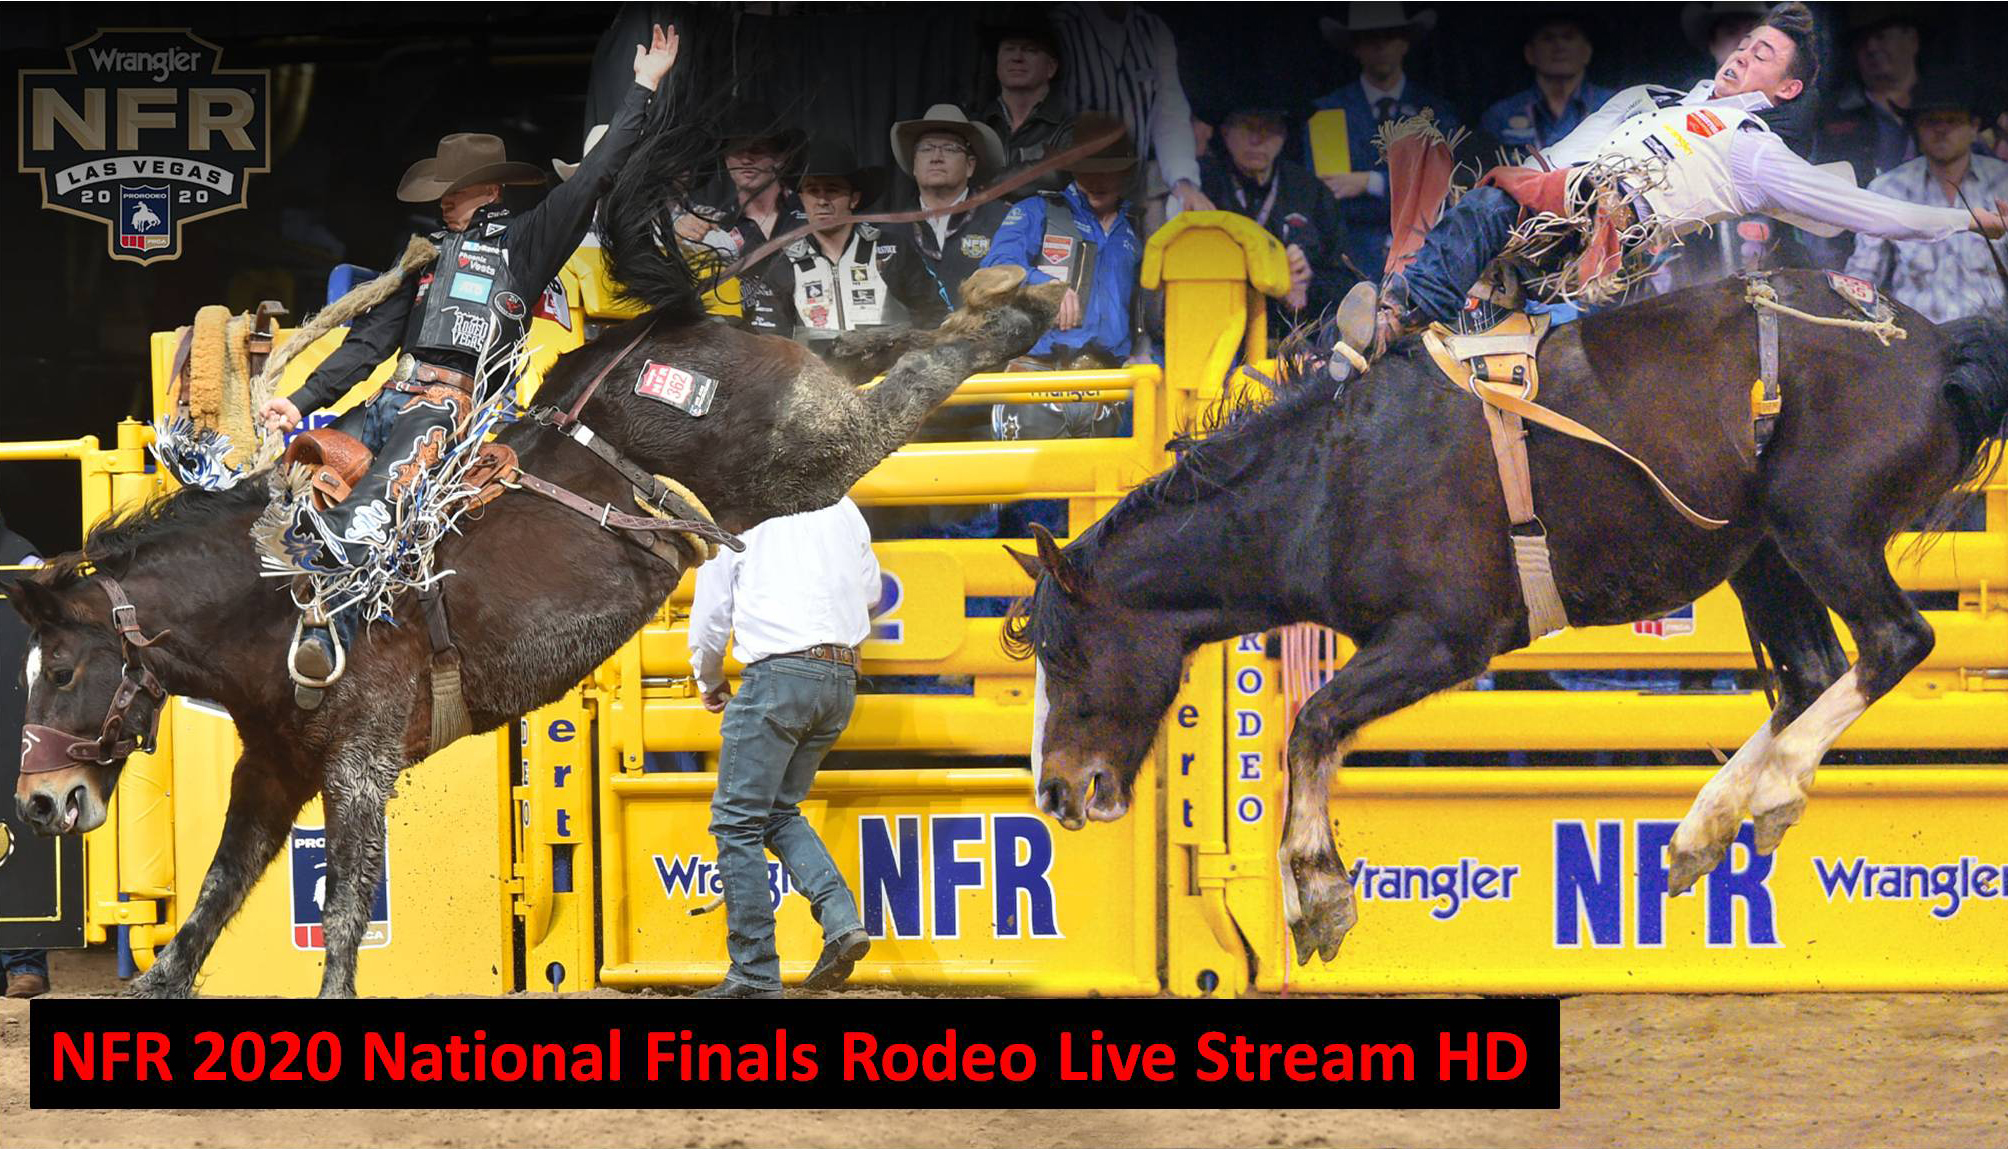 National Finals Rodeo 2020 NFR